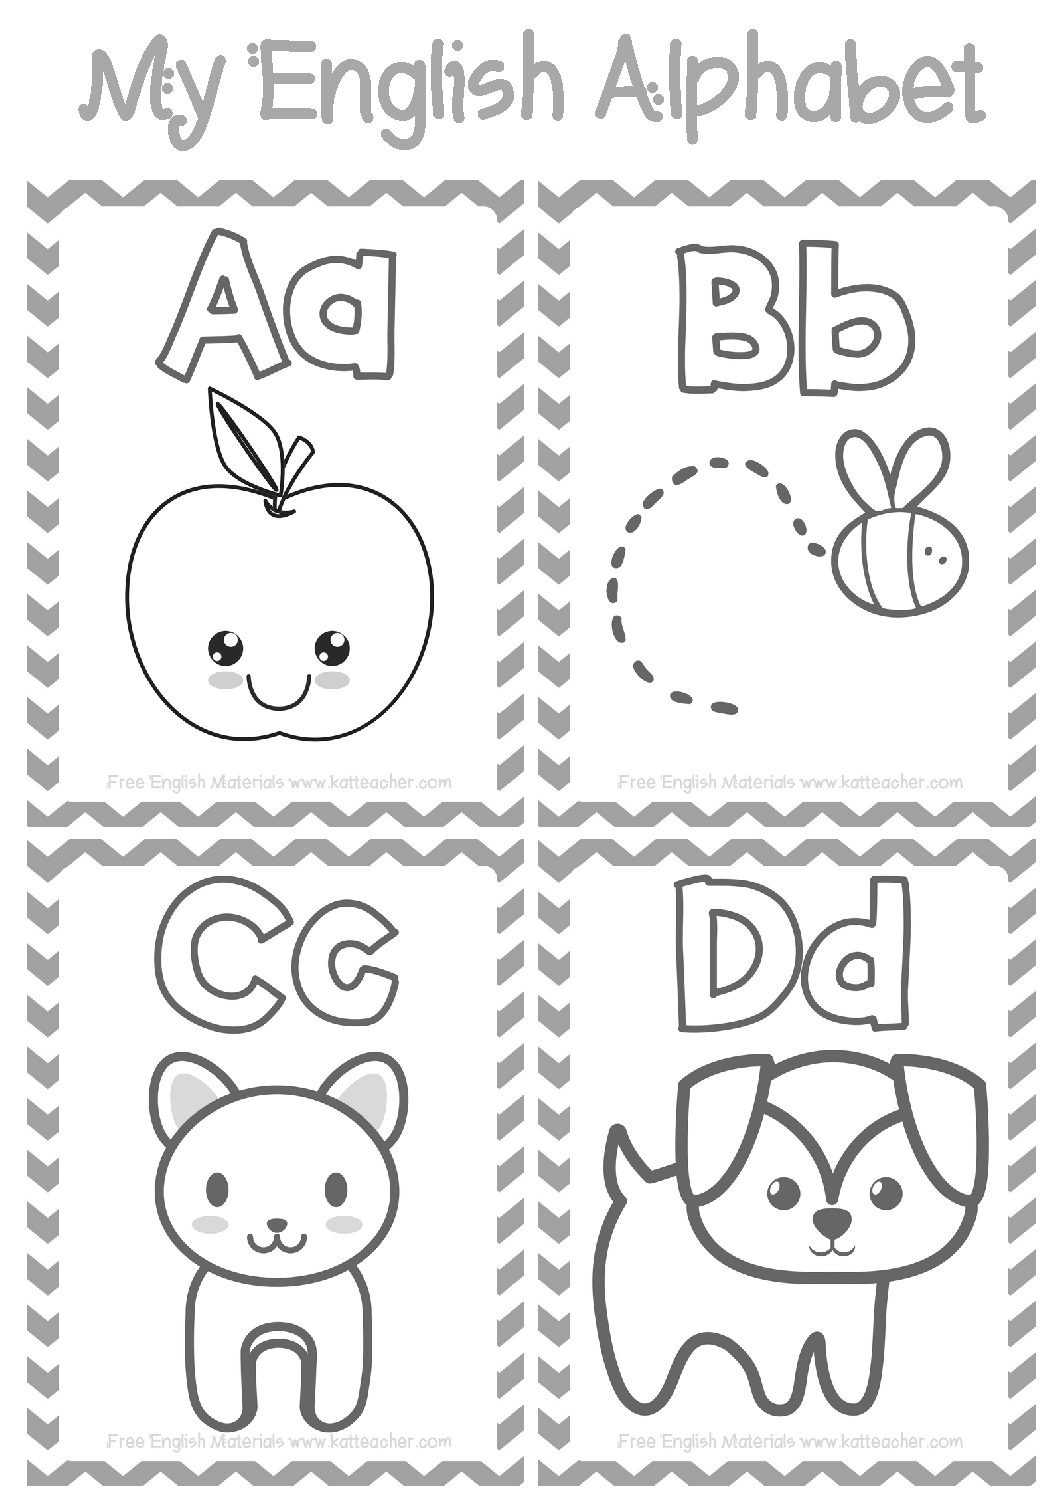 coloring sheet alphabet coloring pages my english alphabet flashcards free coloring sheets and sheet alphabet coloring pages coloring